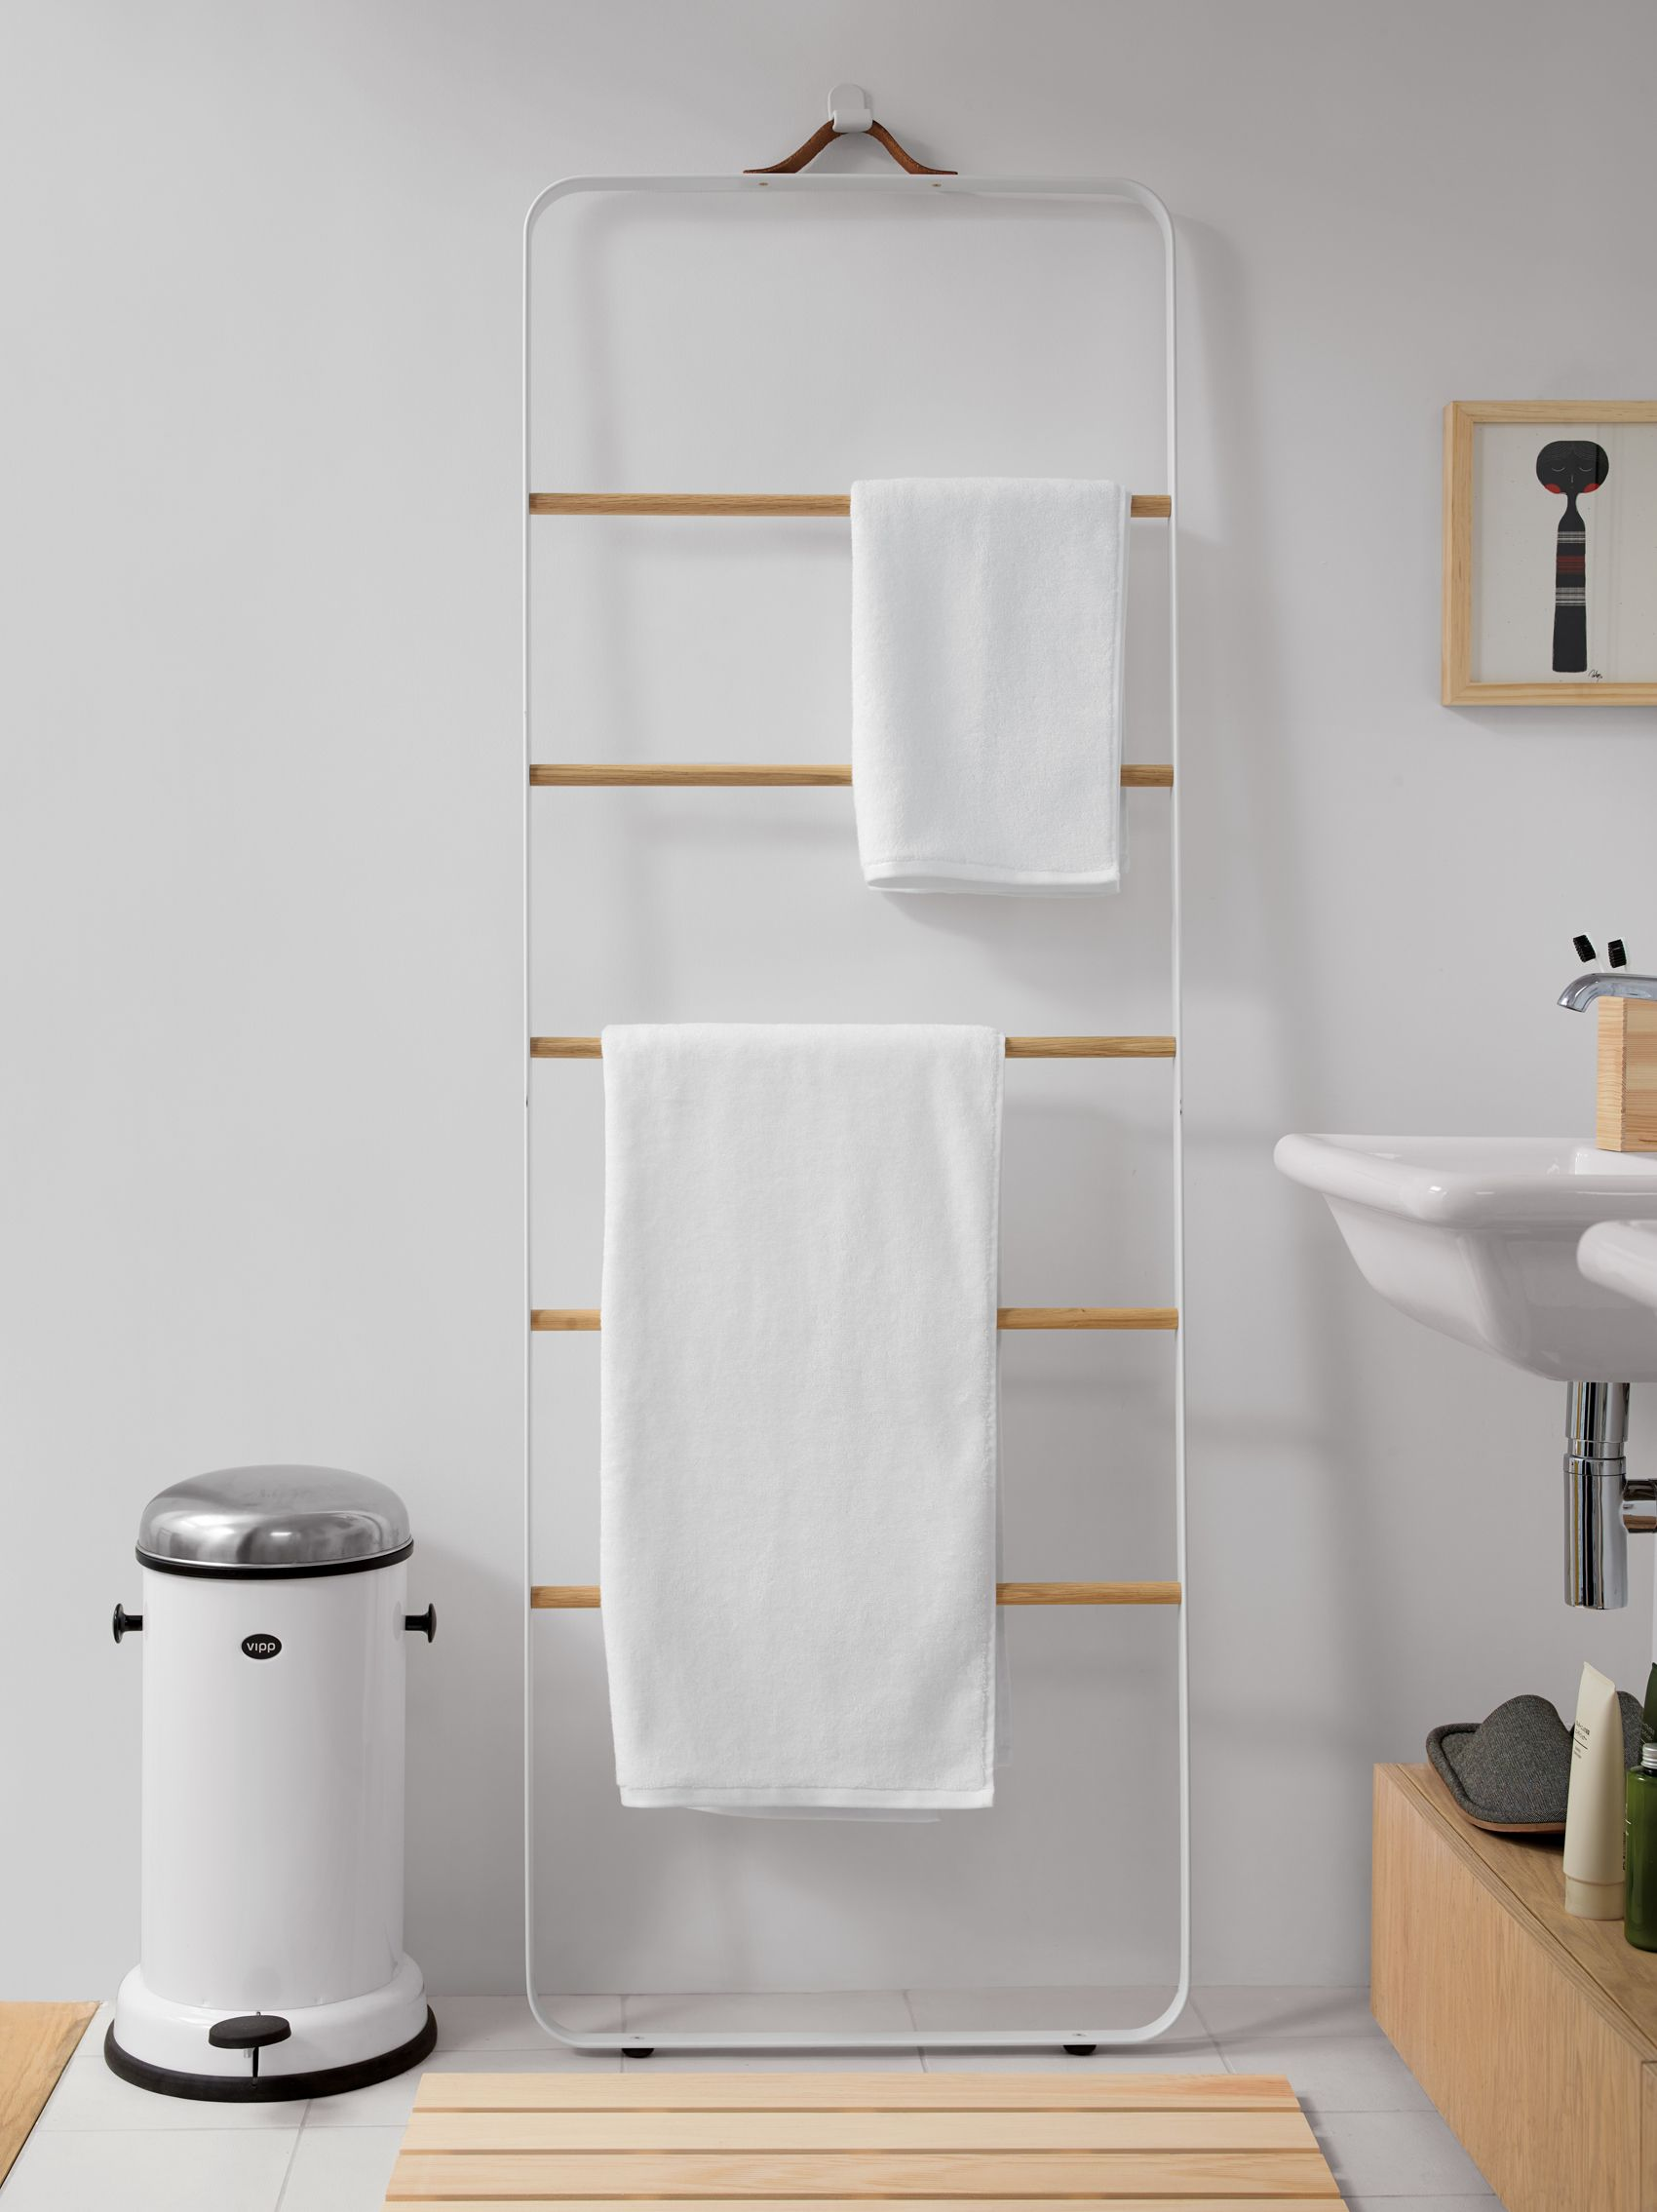 Towel ladder designed by norm architects storage in 2019 - Bathroom accessories towel racks ...